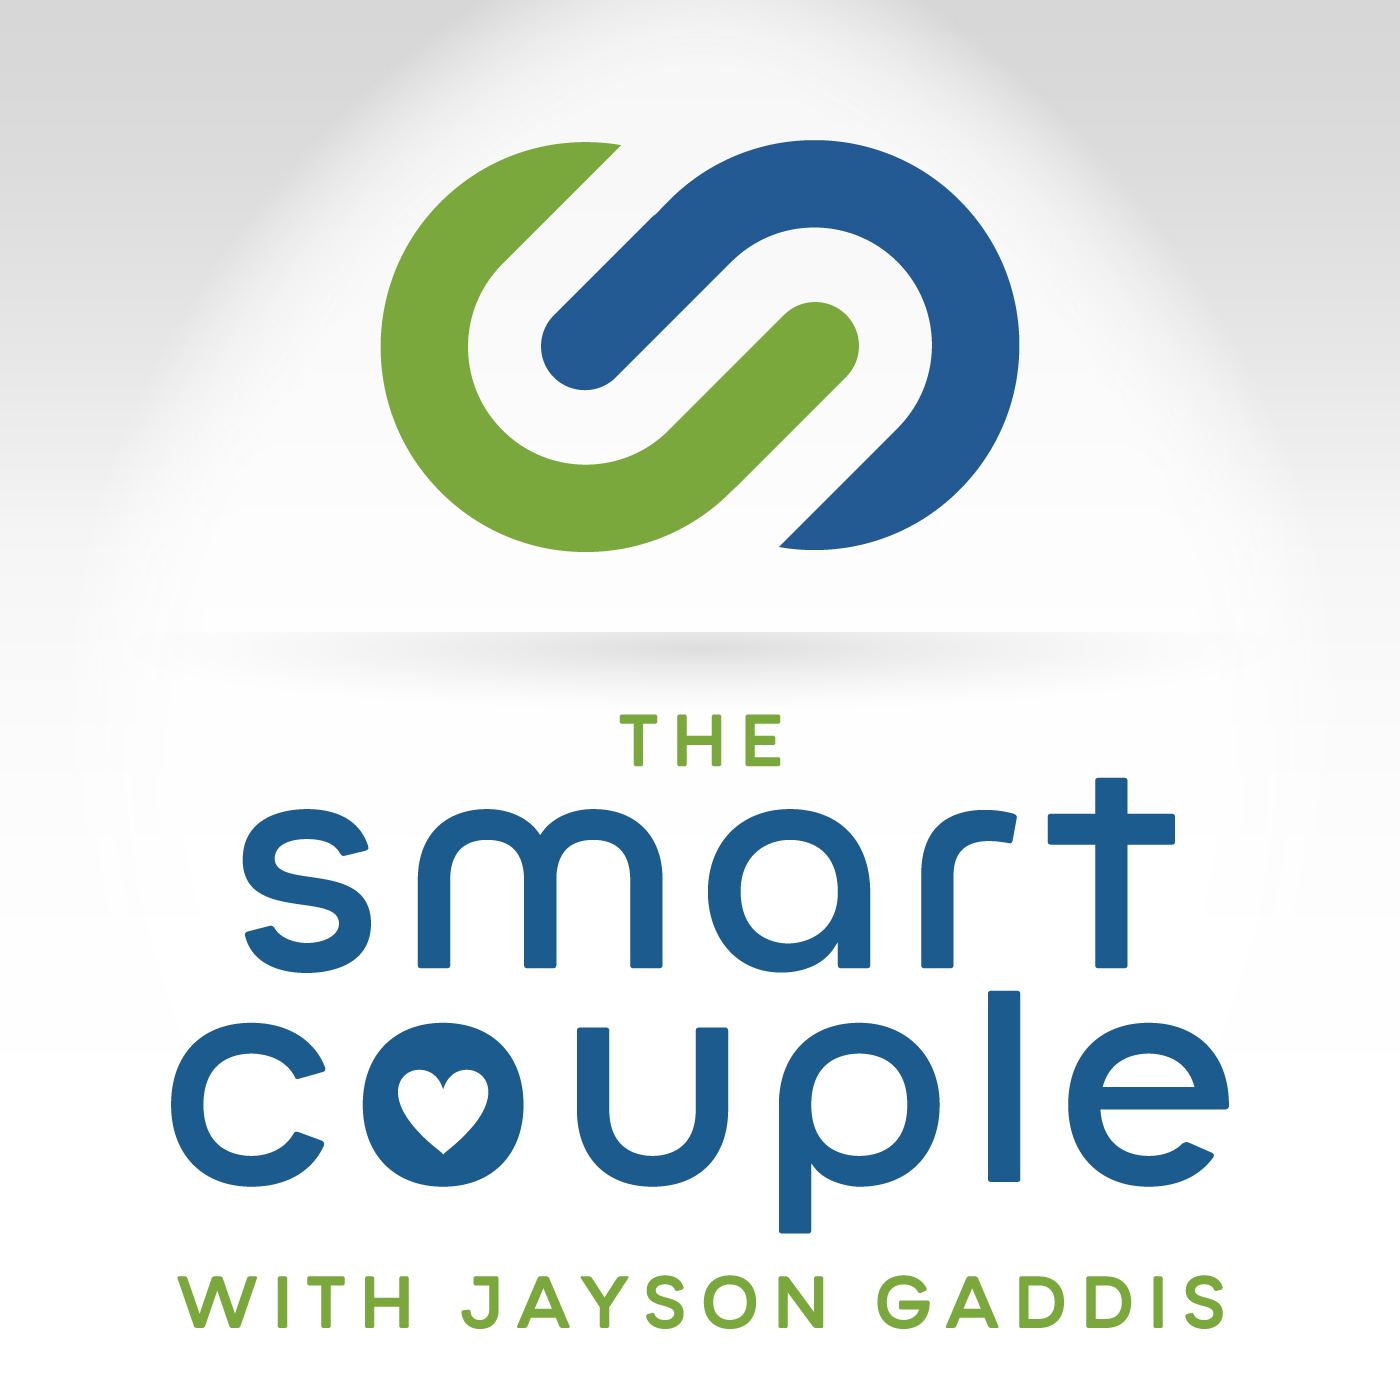 The Relationship School Podcast - SC 199 - They Went To 5 Different Therapists, Hired Divorce Lawyers And Somehow Stayed Together! - Harville Hendrix & Helen LaKelly Hunt